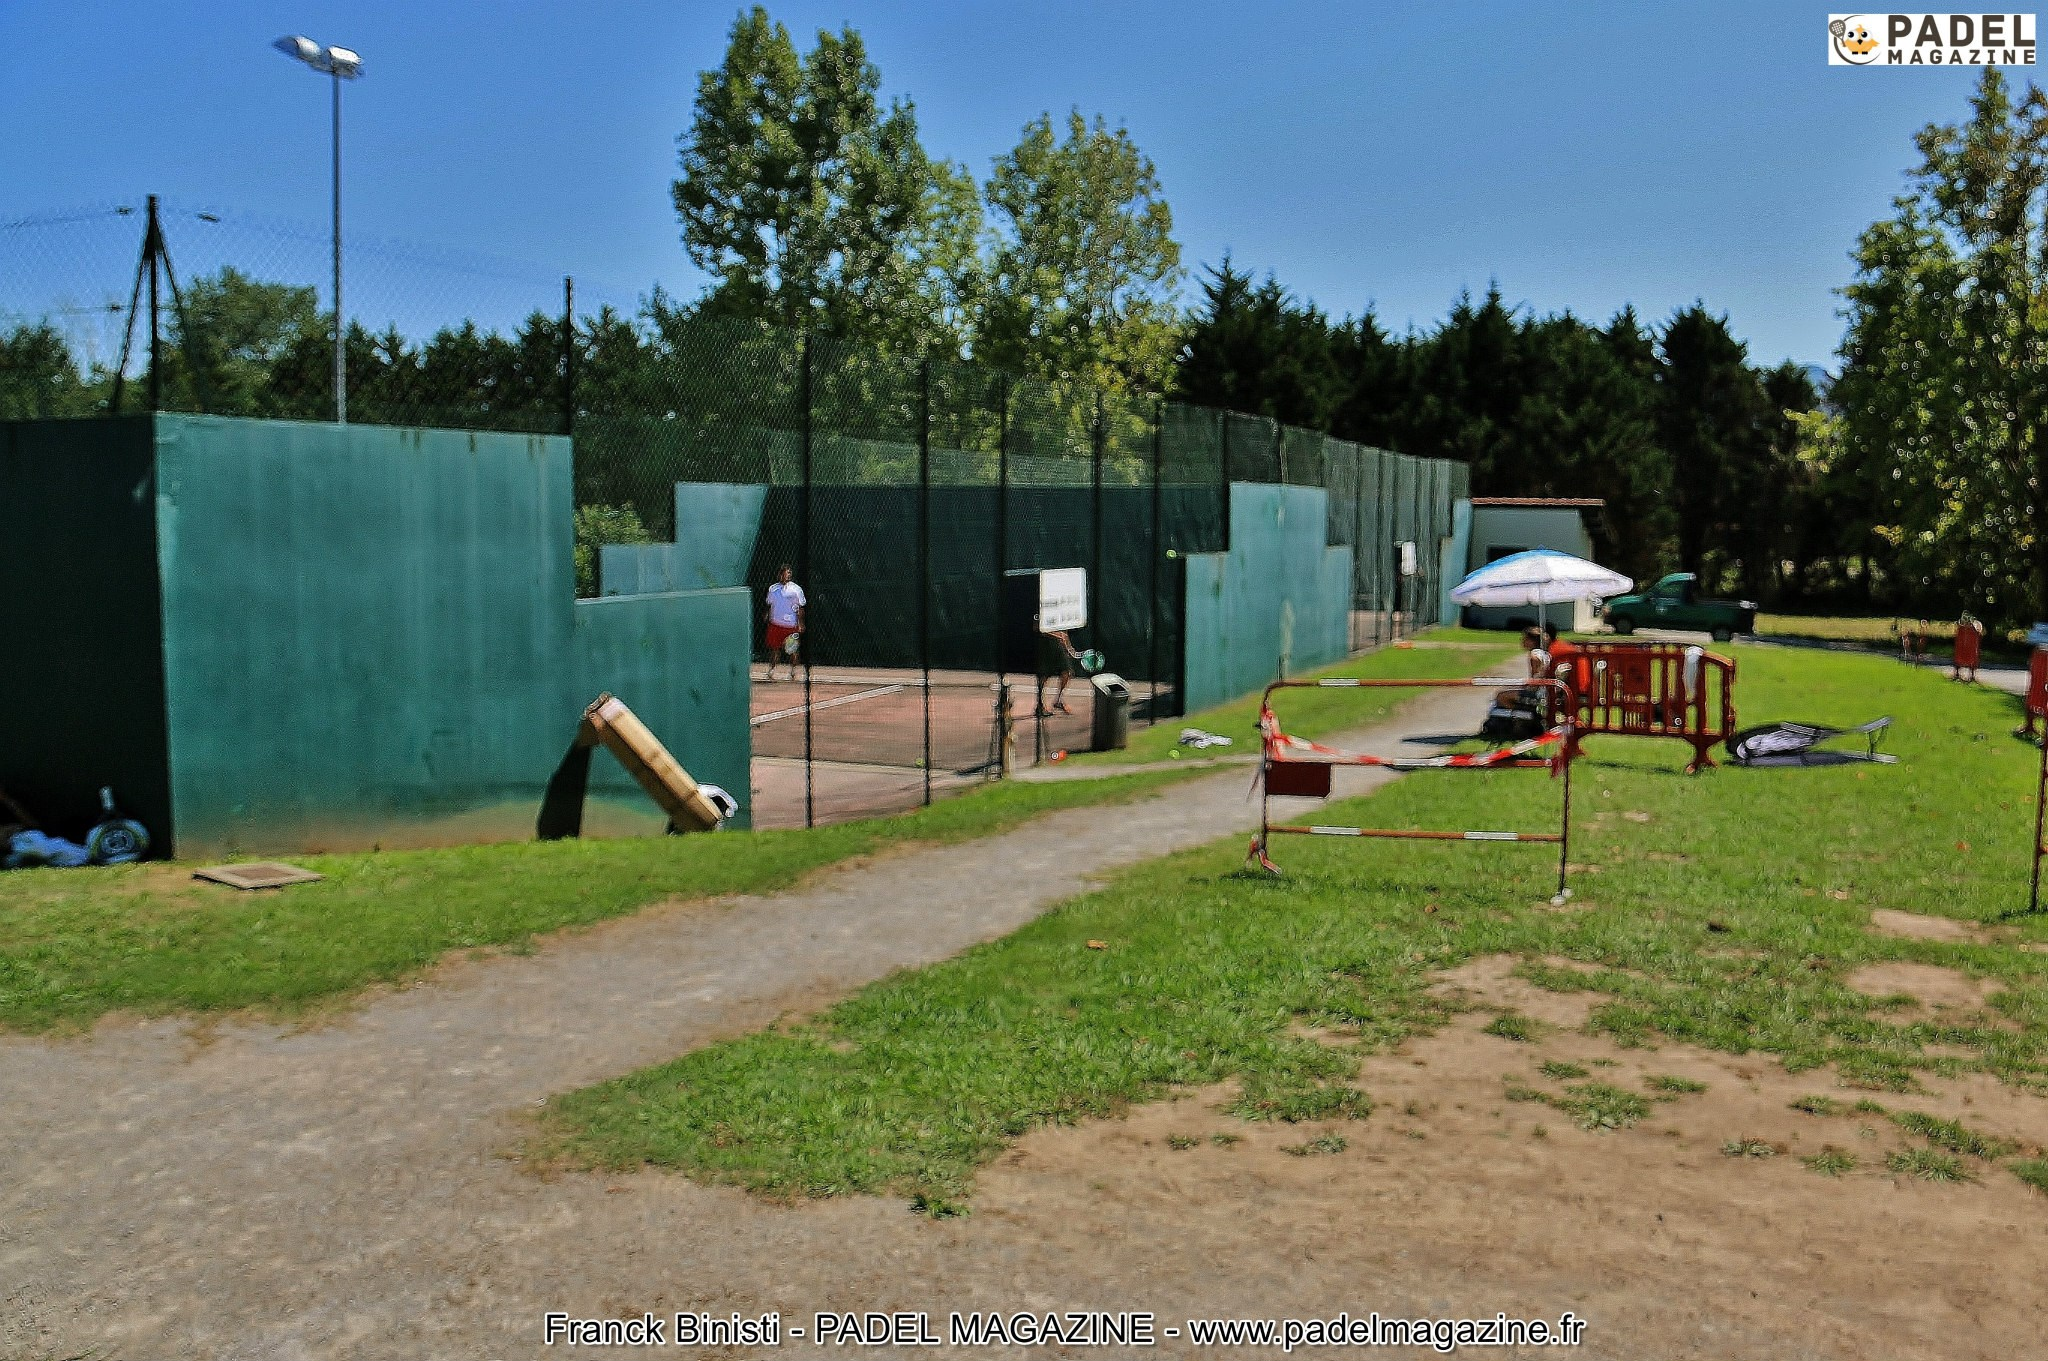 Tennis Club Luzien Padel